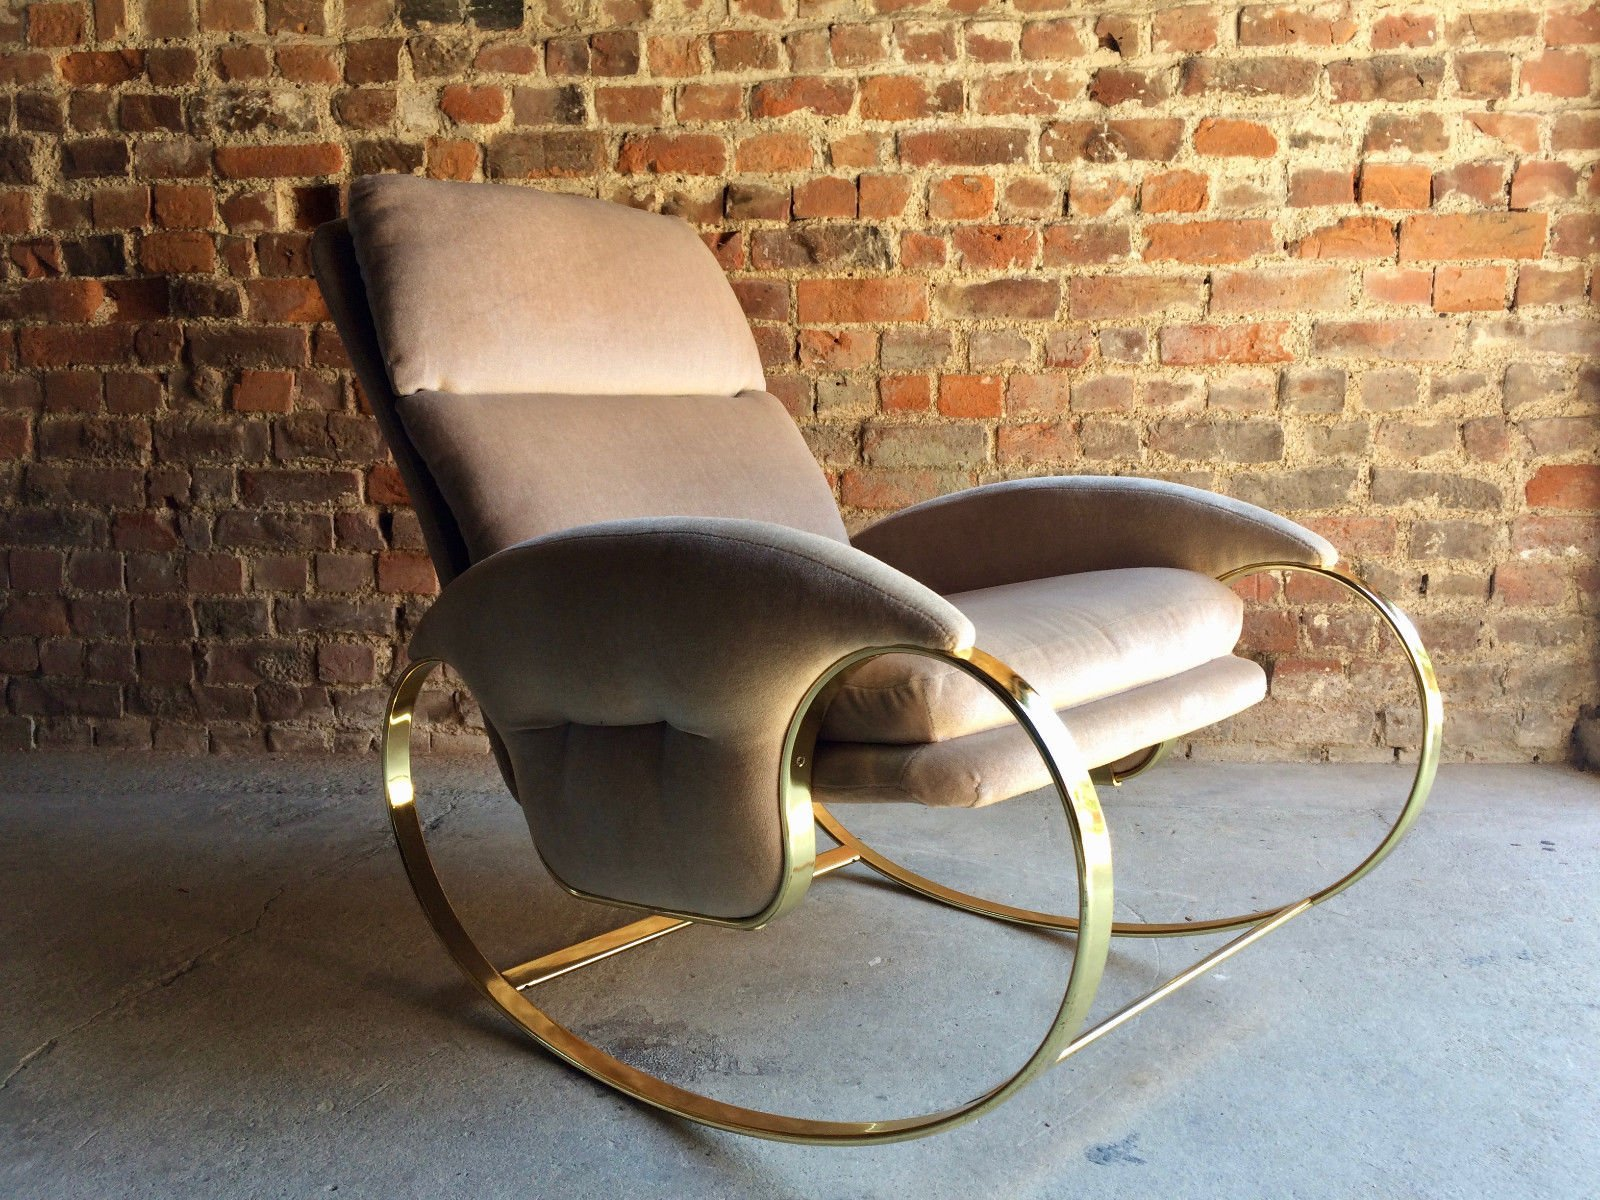 Mid Century Italian Rocking Chair by Guido Faleschini 1970s for